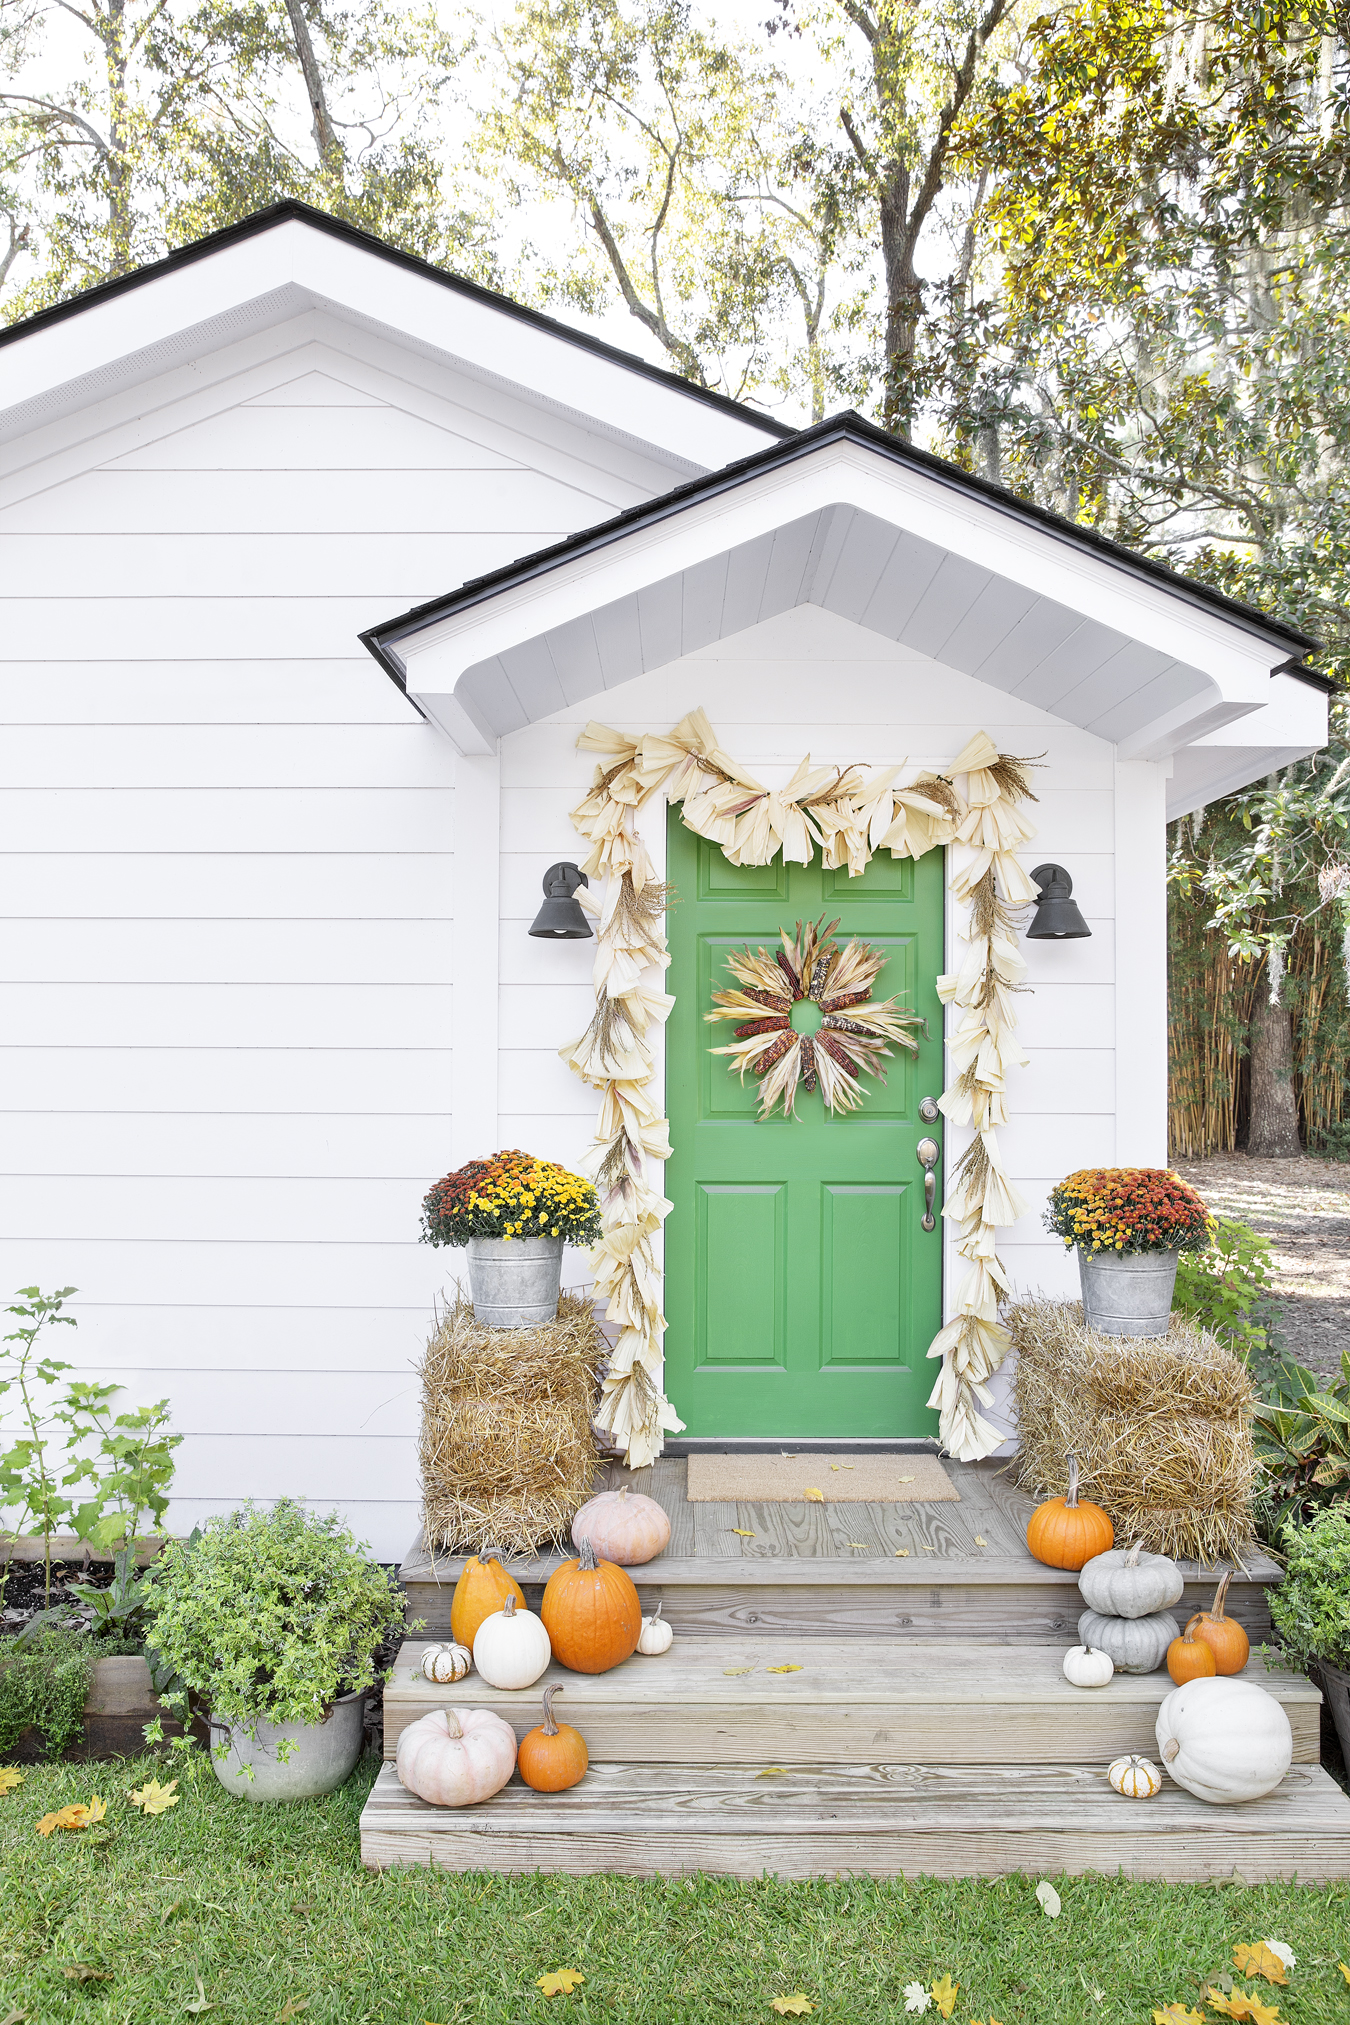 37 fall porch decorating ideas ways to decorate your porch for fall - Fall House Decorations